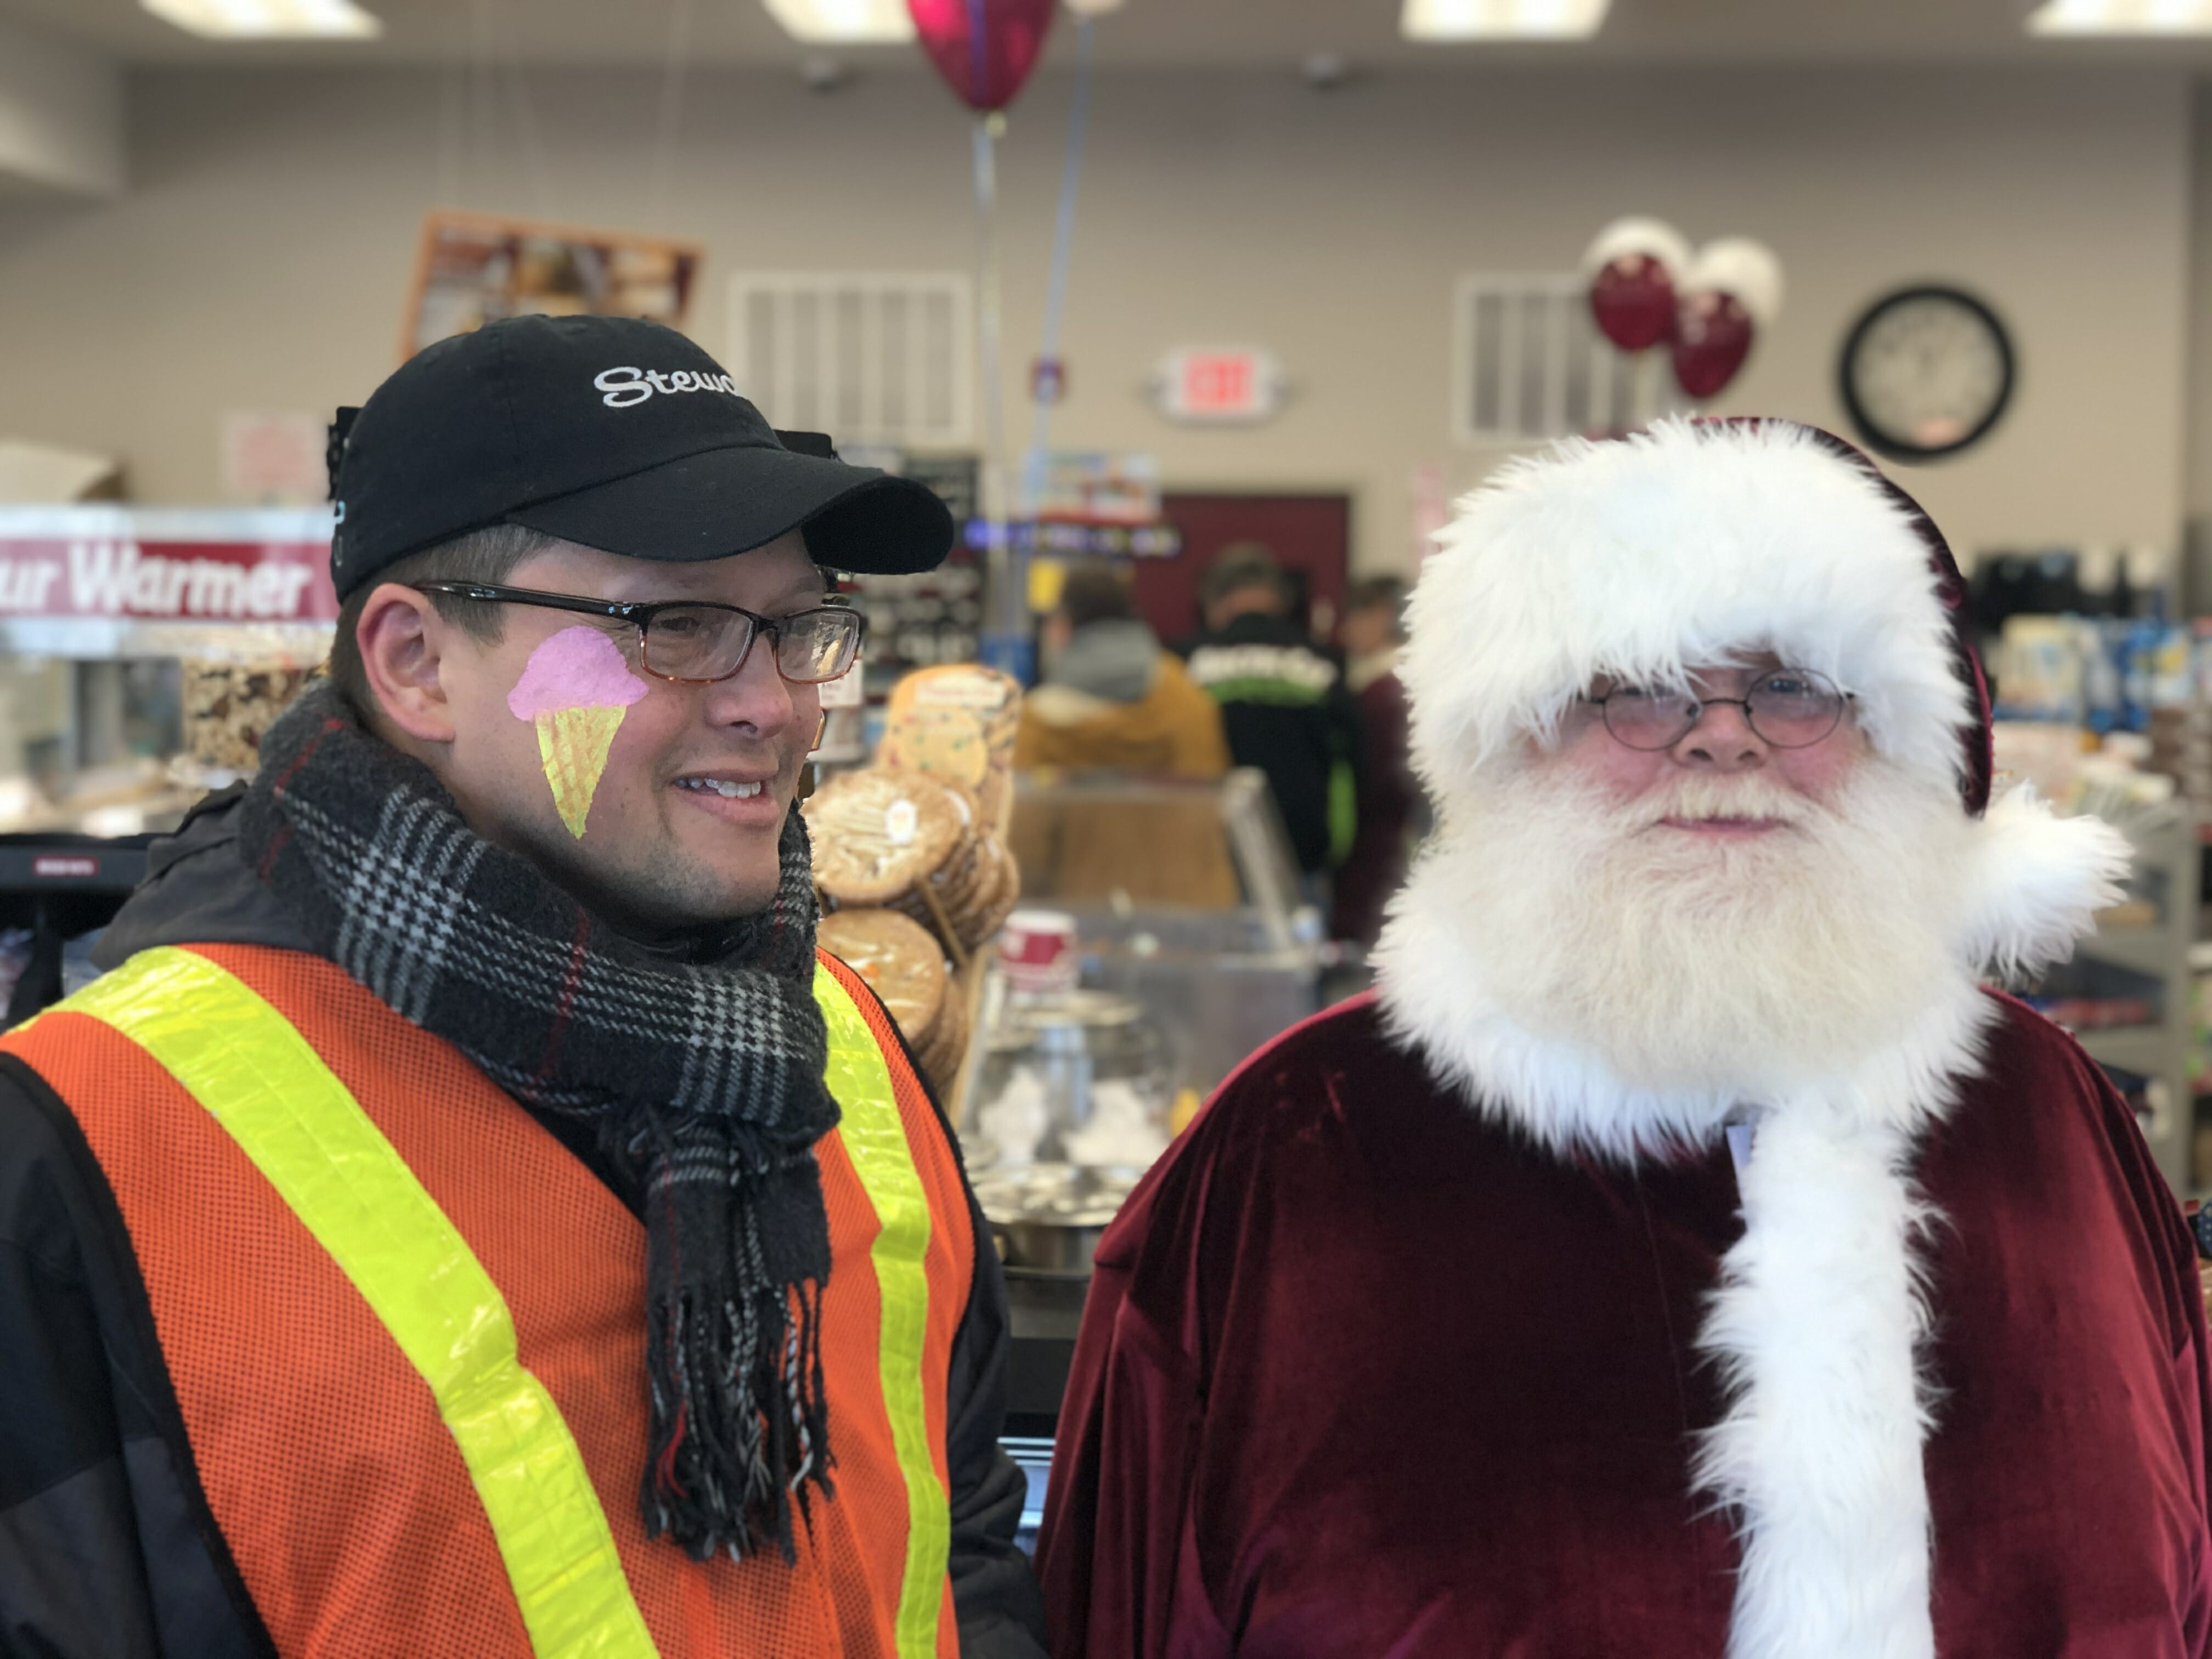 santa and a stewarts employee with face paint of an ice cream cone